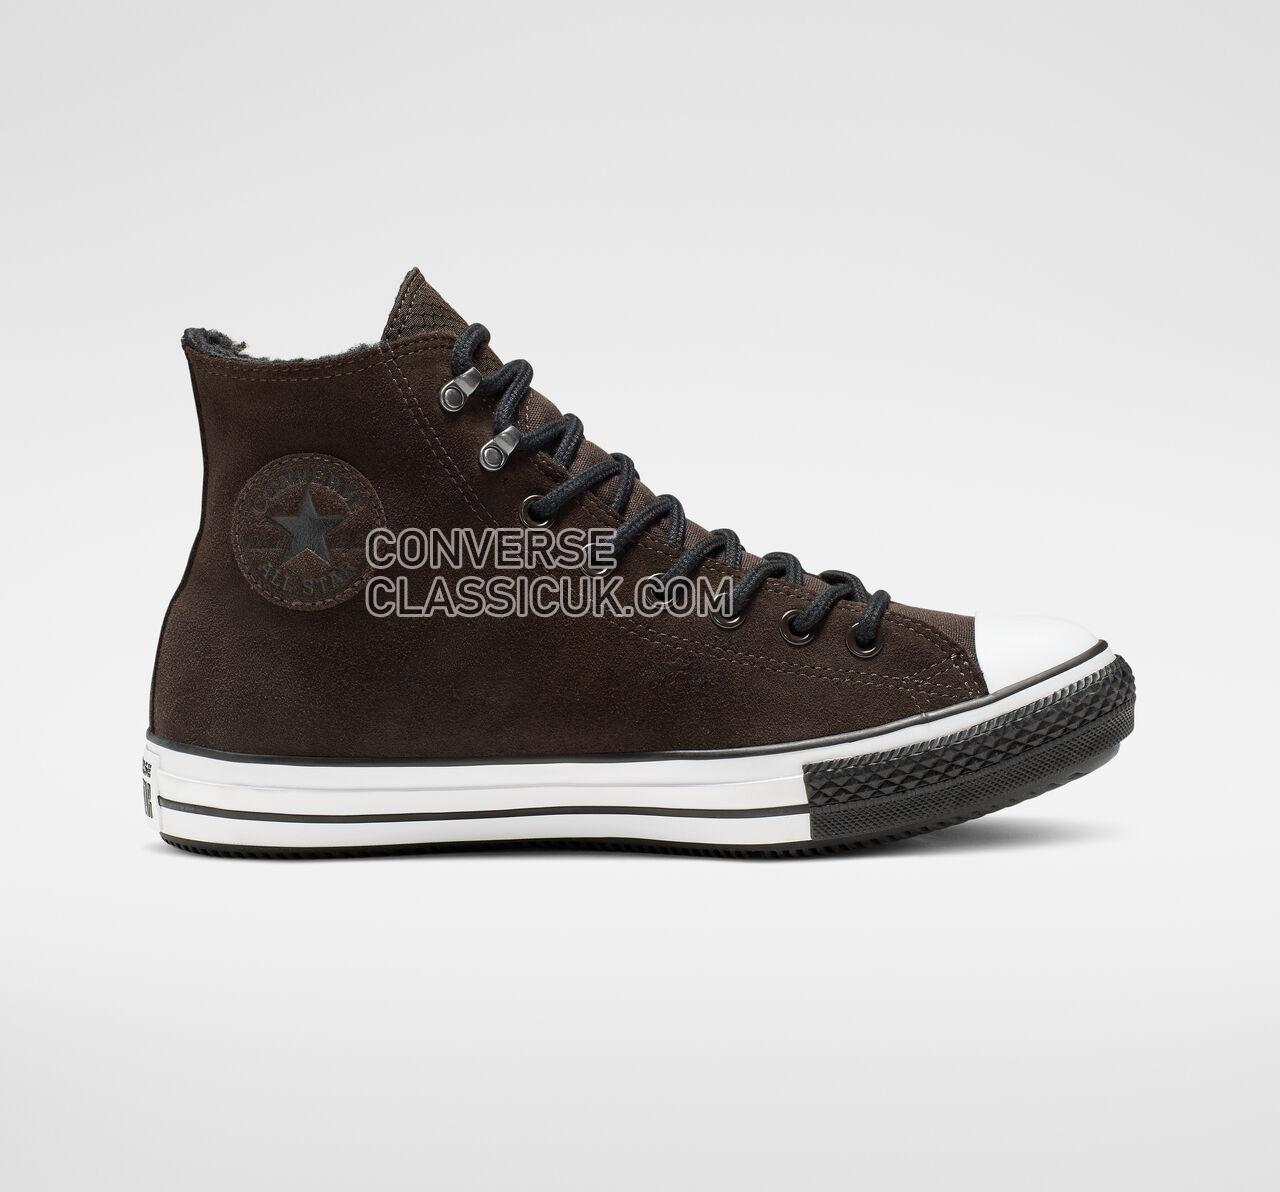 Converse Chuck Taylor All Star Winter Waterproof High Top Mens Womens Unisex 165452C Velvet Brown/White/Black Shoes